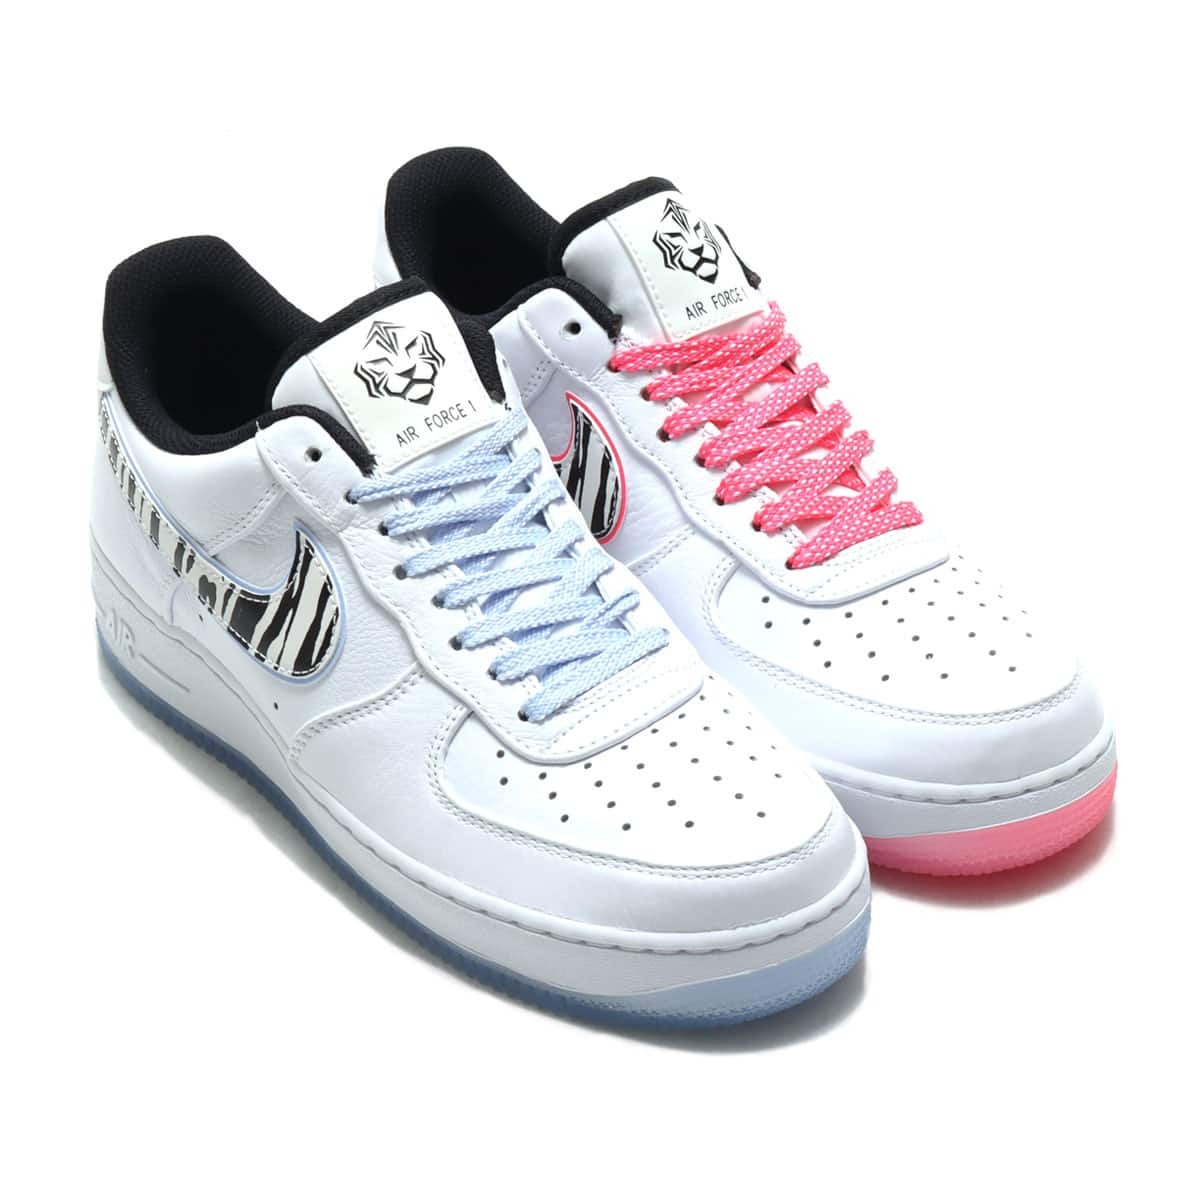 NIKE AIR FORCE 1 '07 QS WHITE/BLACK-MULTI-COLOR 20SU-S_photo_large